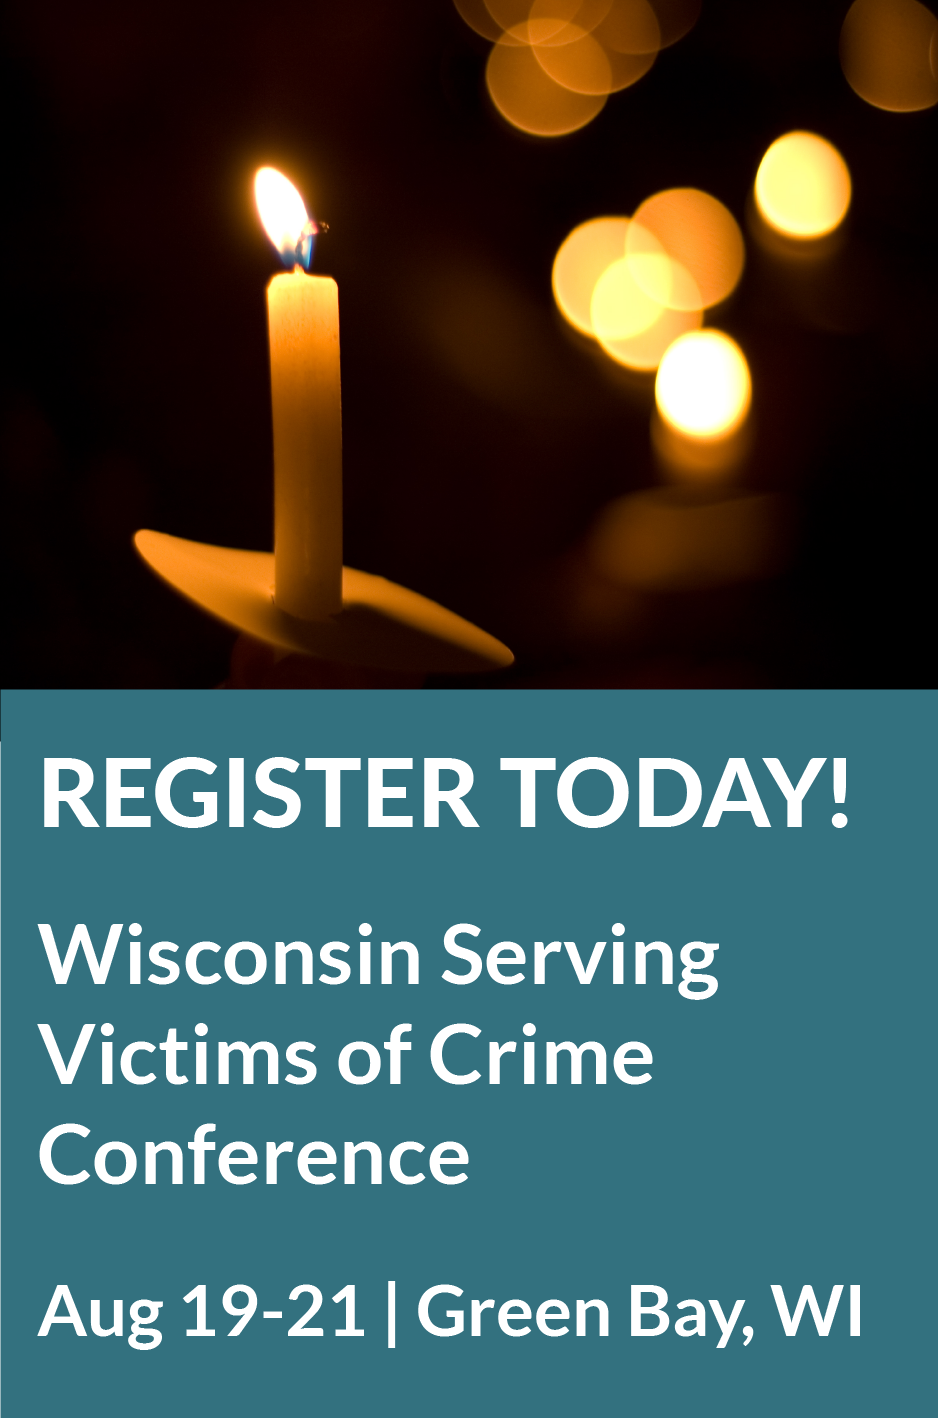 Wisconsin Serving Victims of Crime Conference